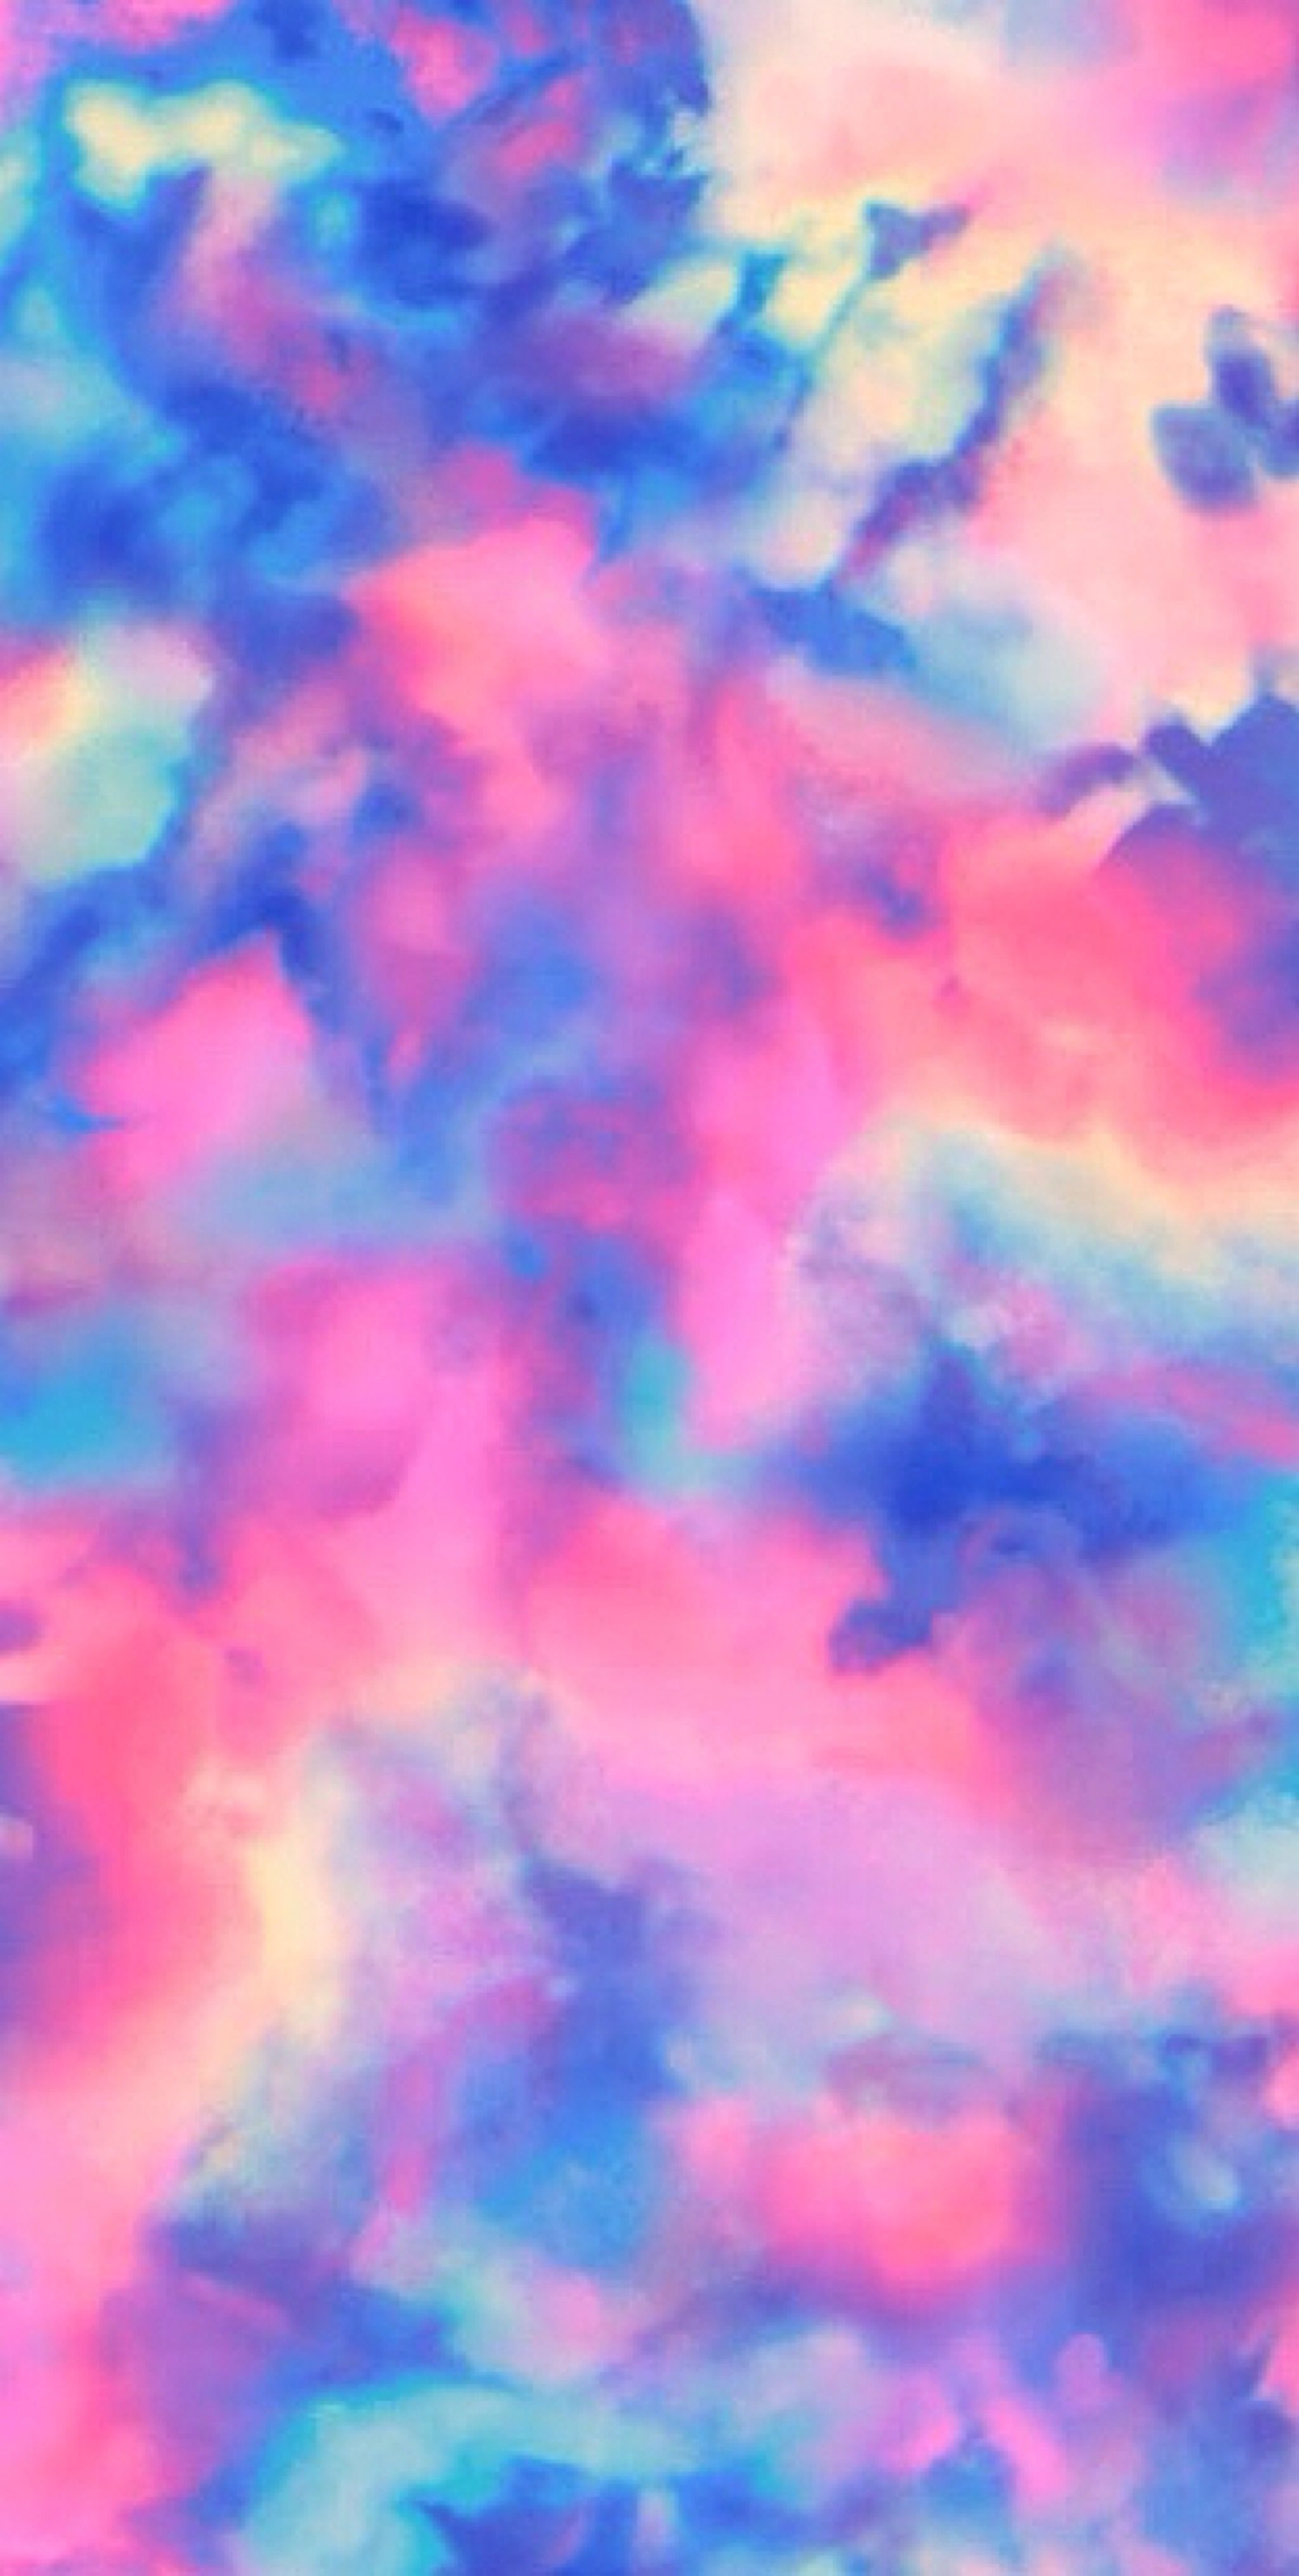 50 Pastel Tie Dye Wallpapers Download At Wallpaperbro Ombre Wallpaper Iphone Tie Dye Wallpaper Marble Iphone Wallpaper